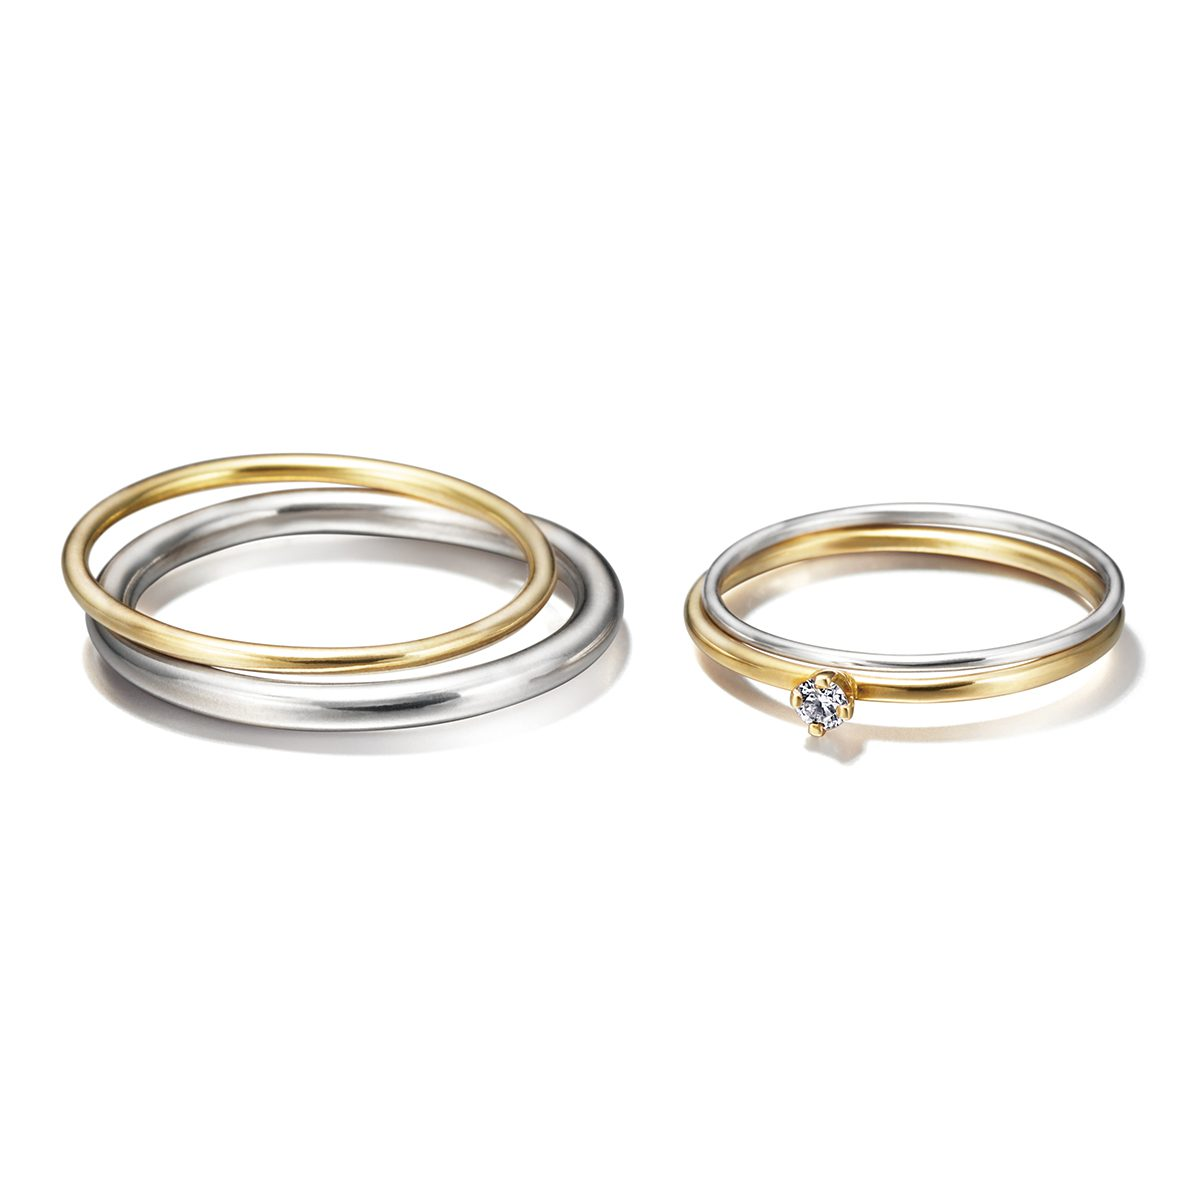 Sweat Pea - Sun and moon set Marriage Rings